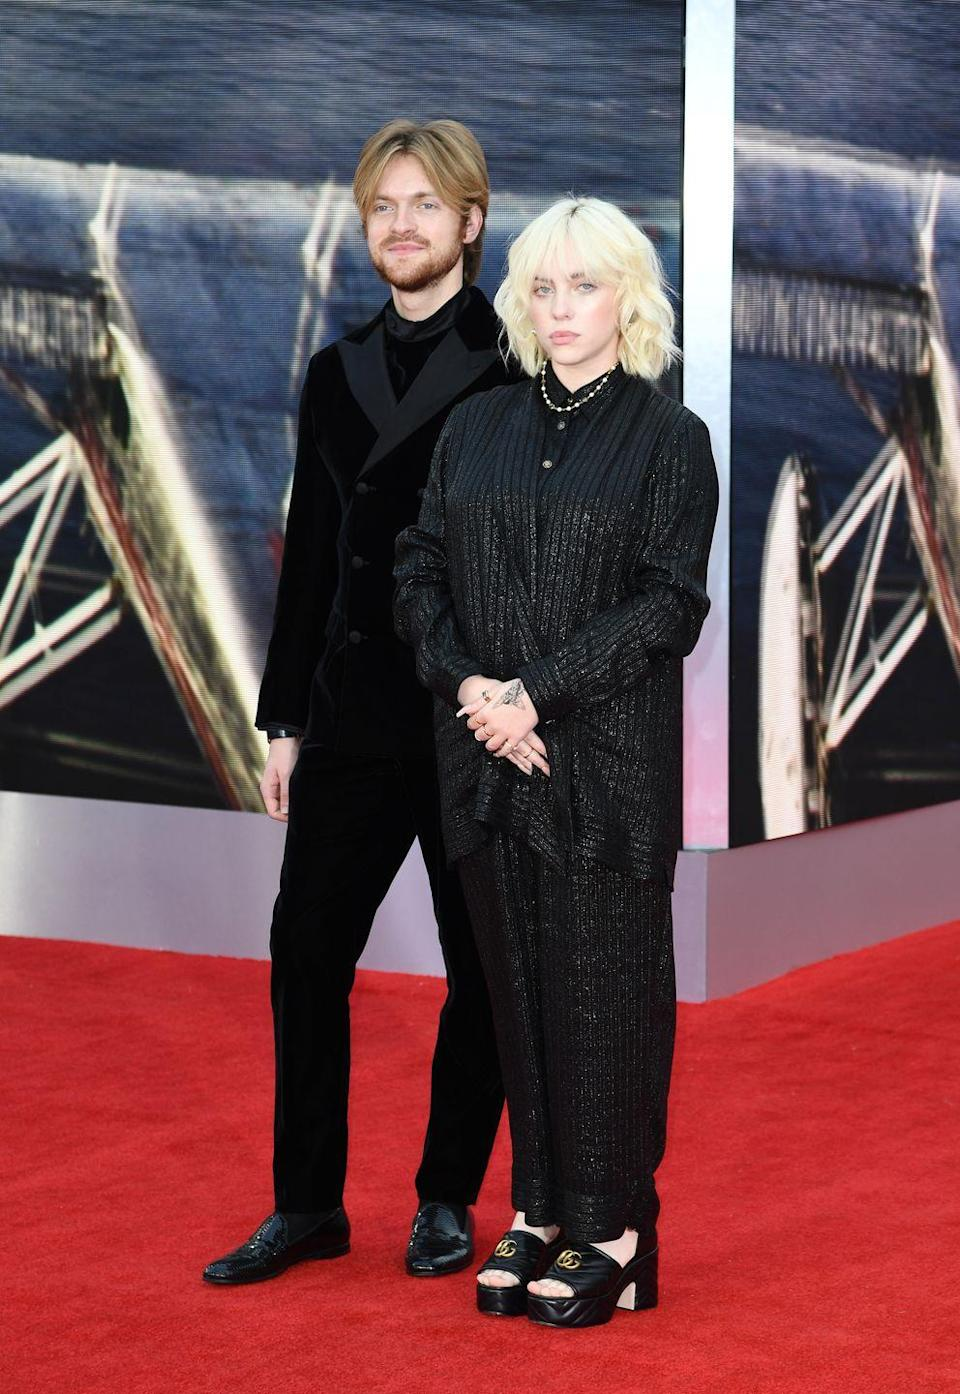 <p>Billie Eilish wore a striped Gucci shirt and trousers with platform shoes to attend the premiere with her brother, Finneas O'Connell. The pair wrote and performed the film's soundtrack. </p>